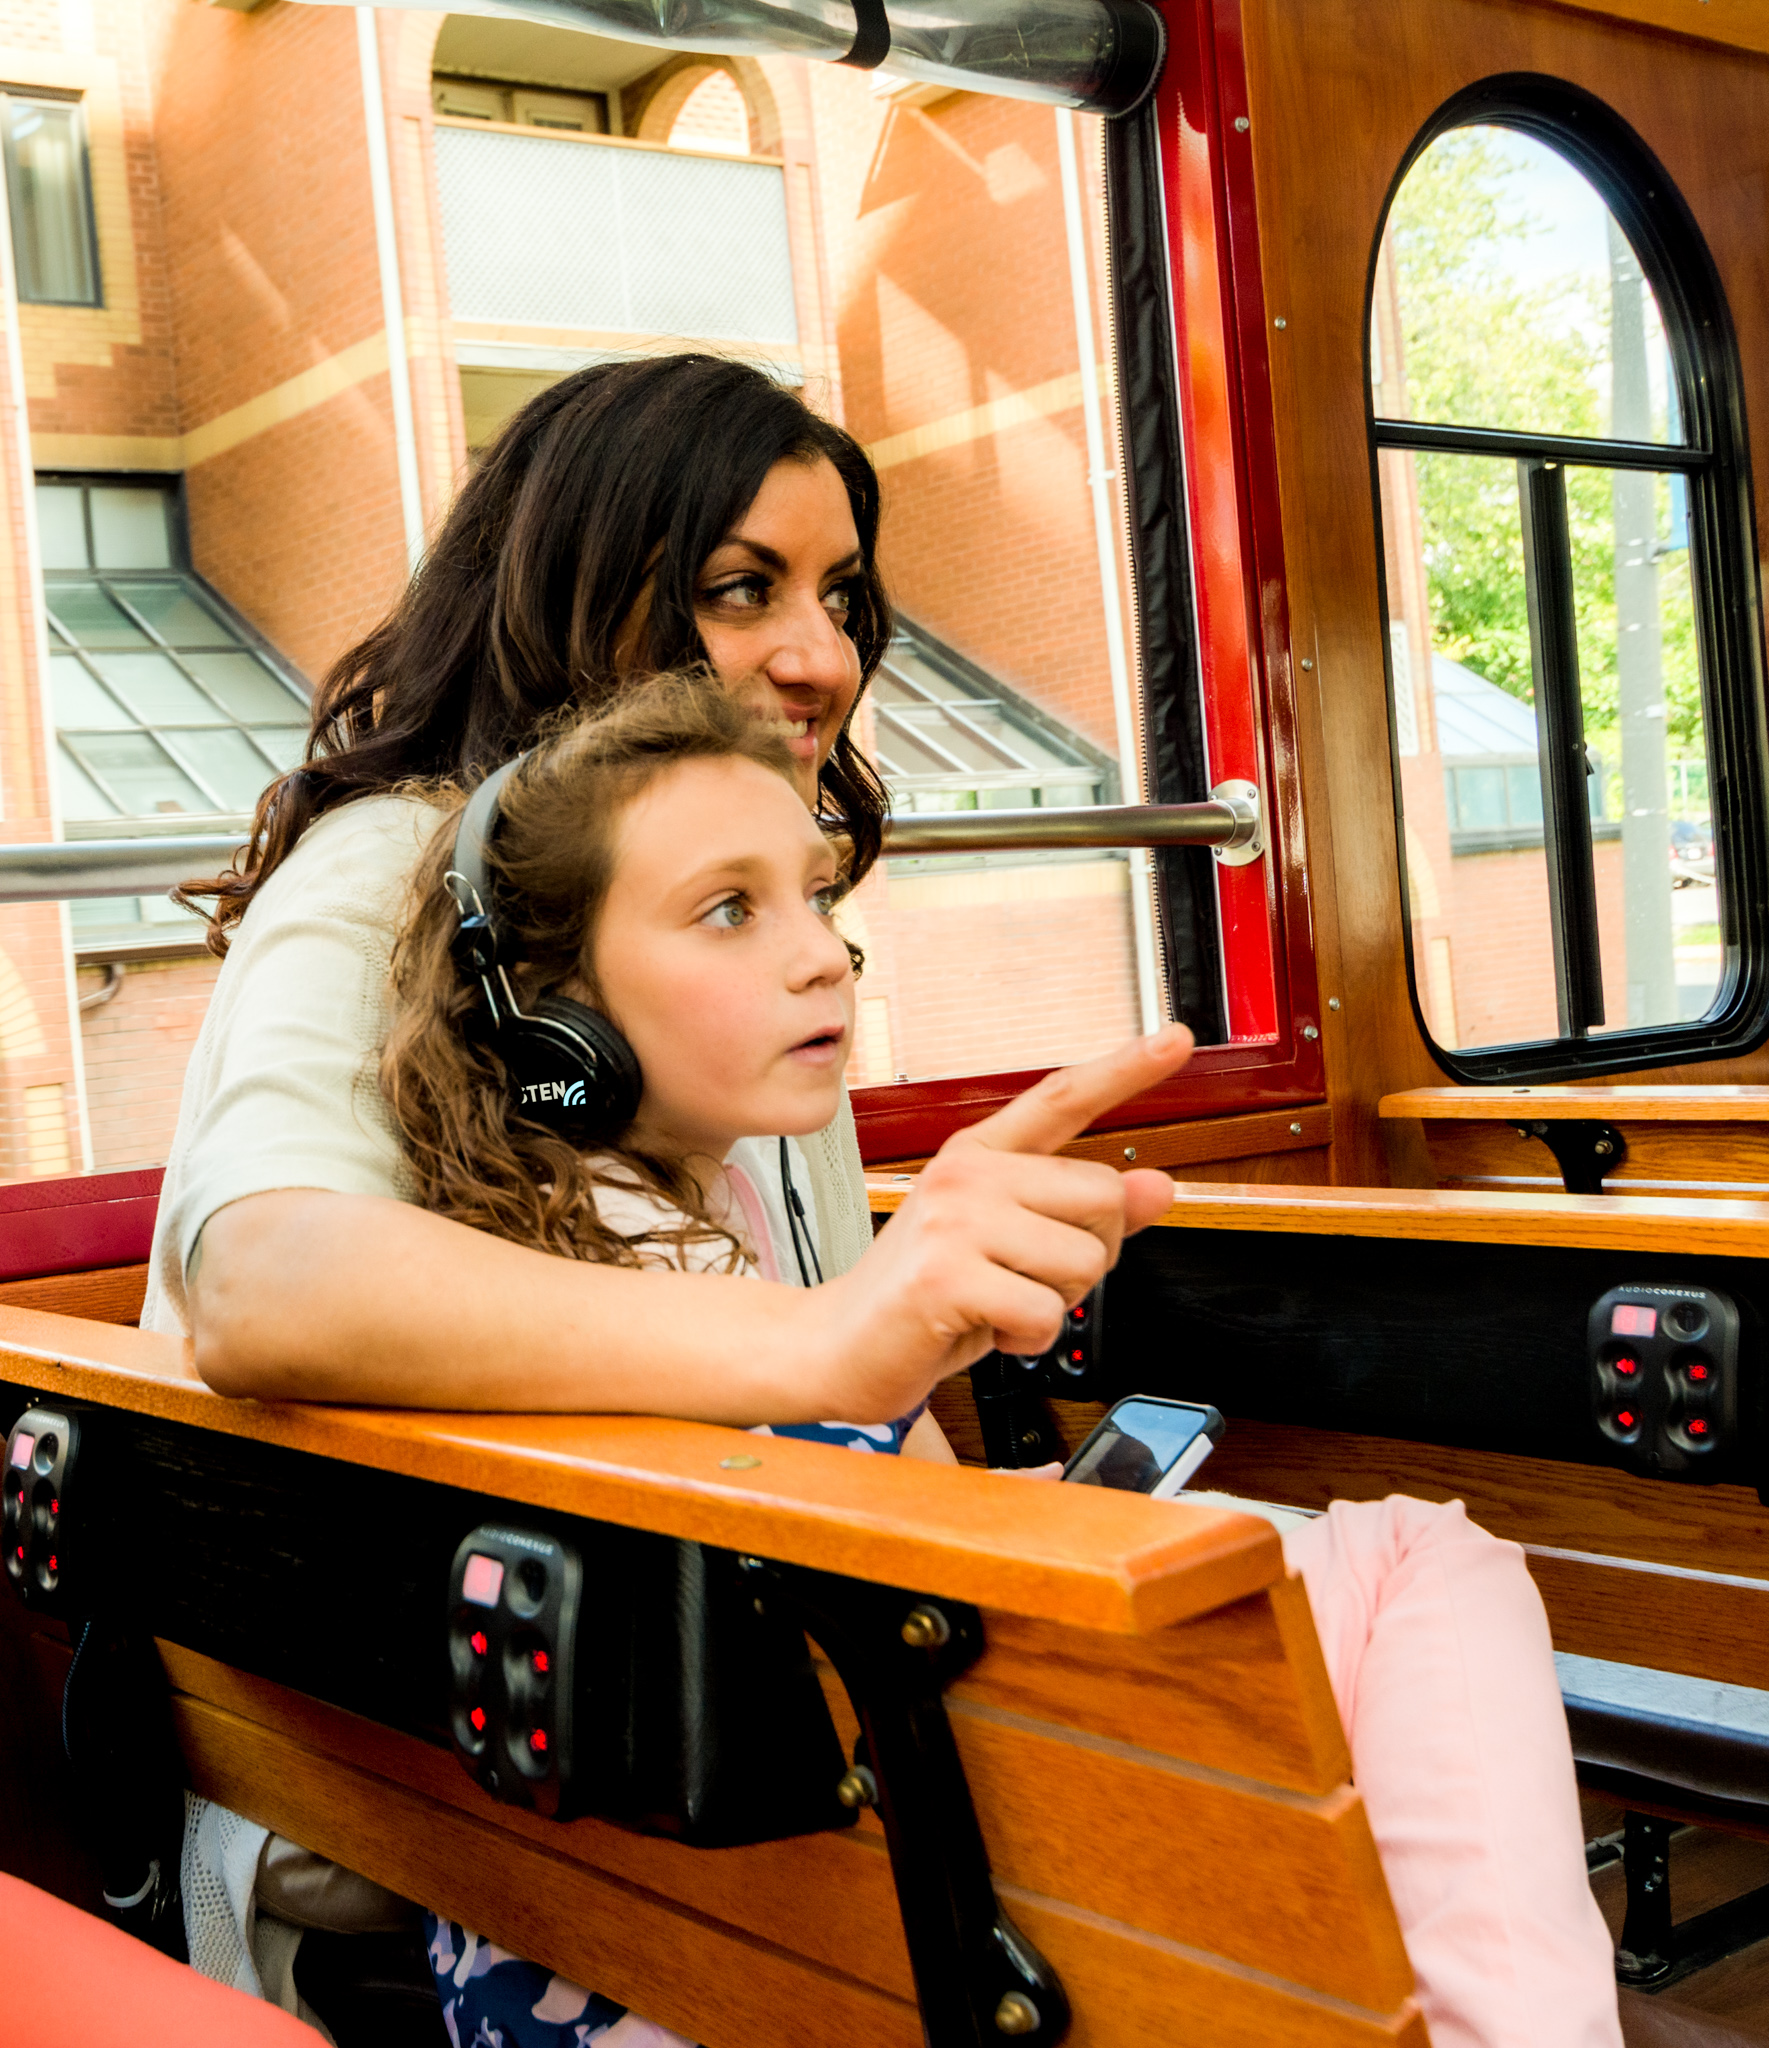 Mom and daughter with headphones on trolley tour